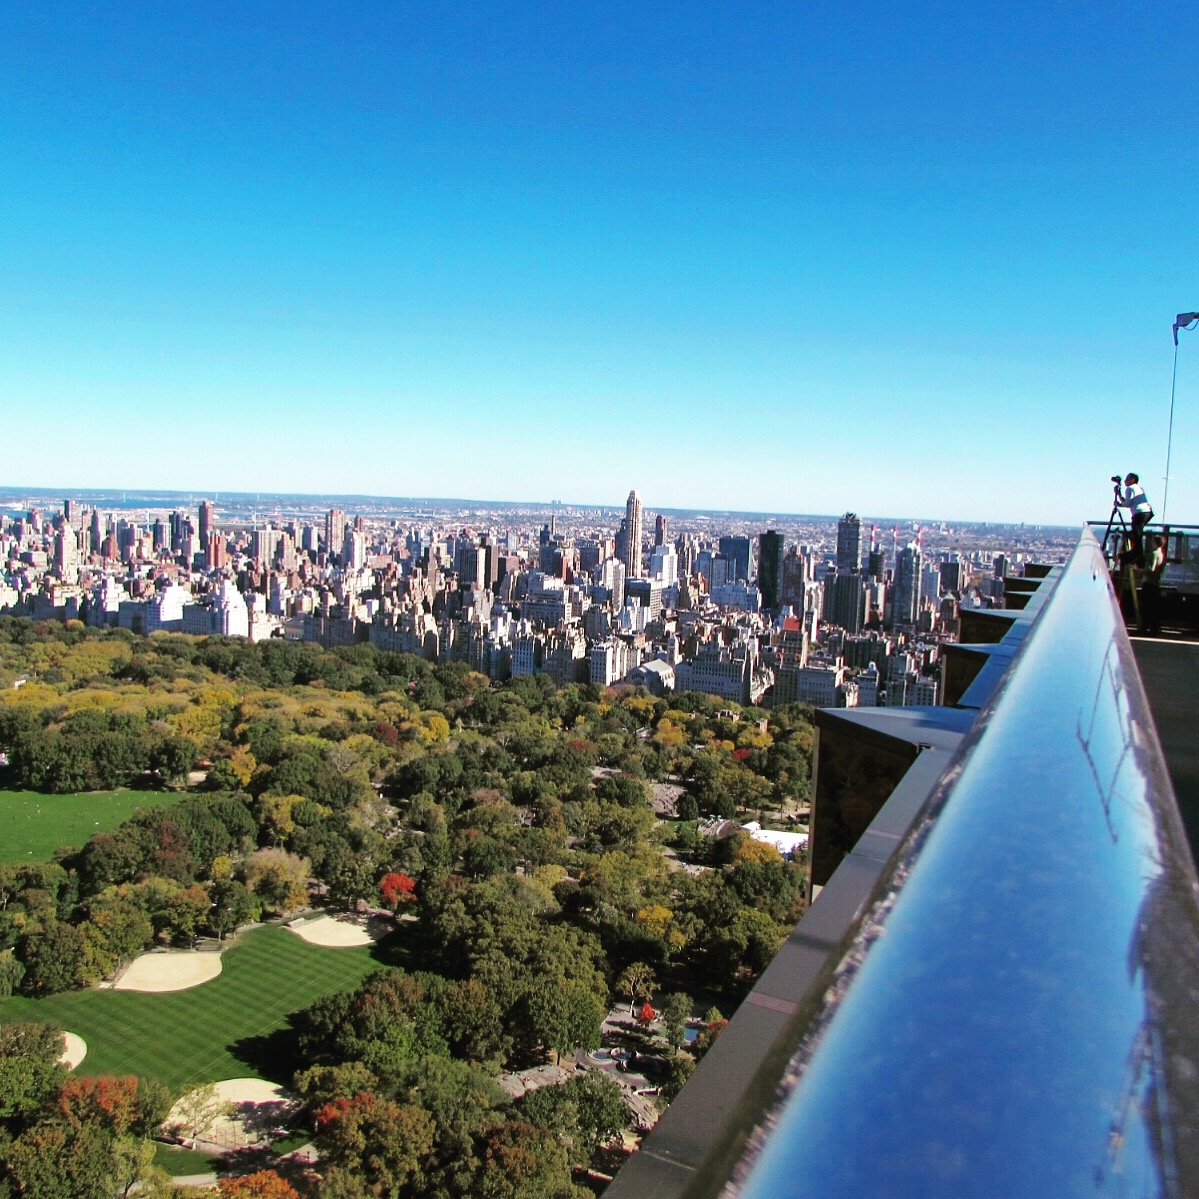 New York Art Director, Jessica Haas captures photographer Scott Frances shooting aerial views of Central Park from Trump New York Hotel